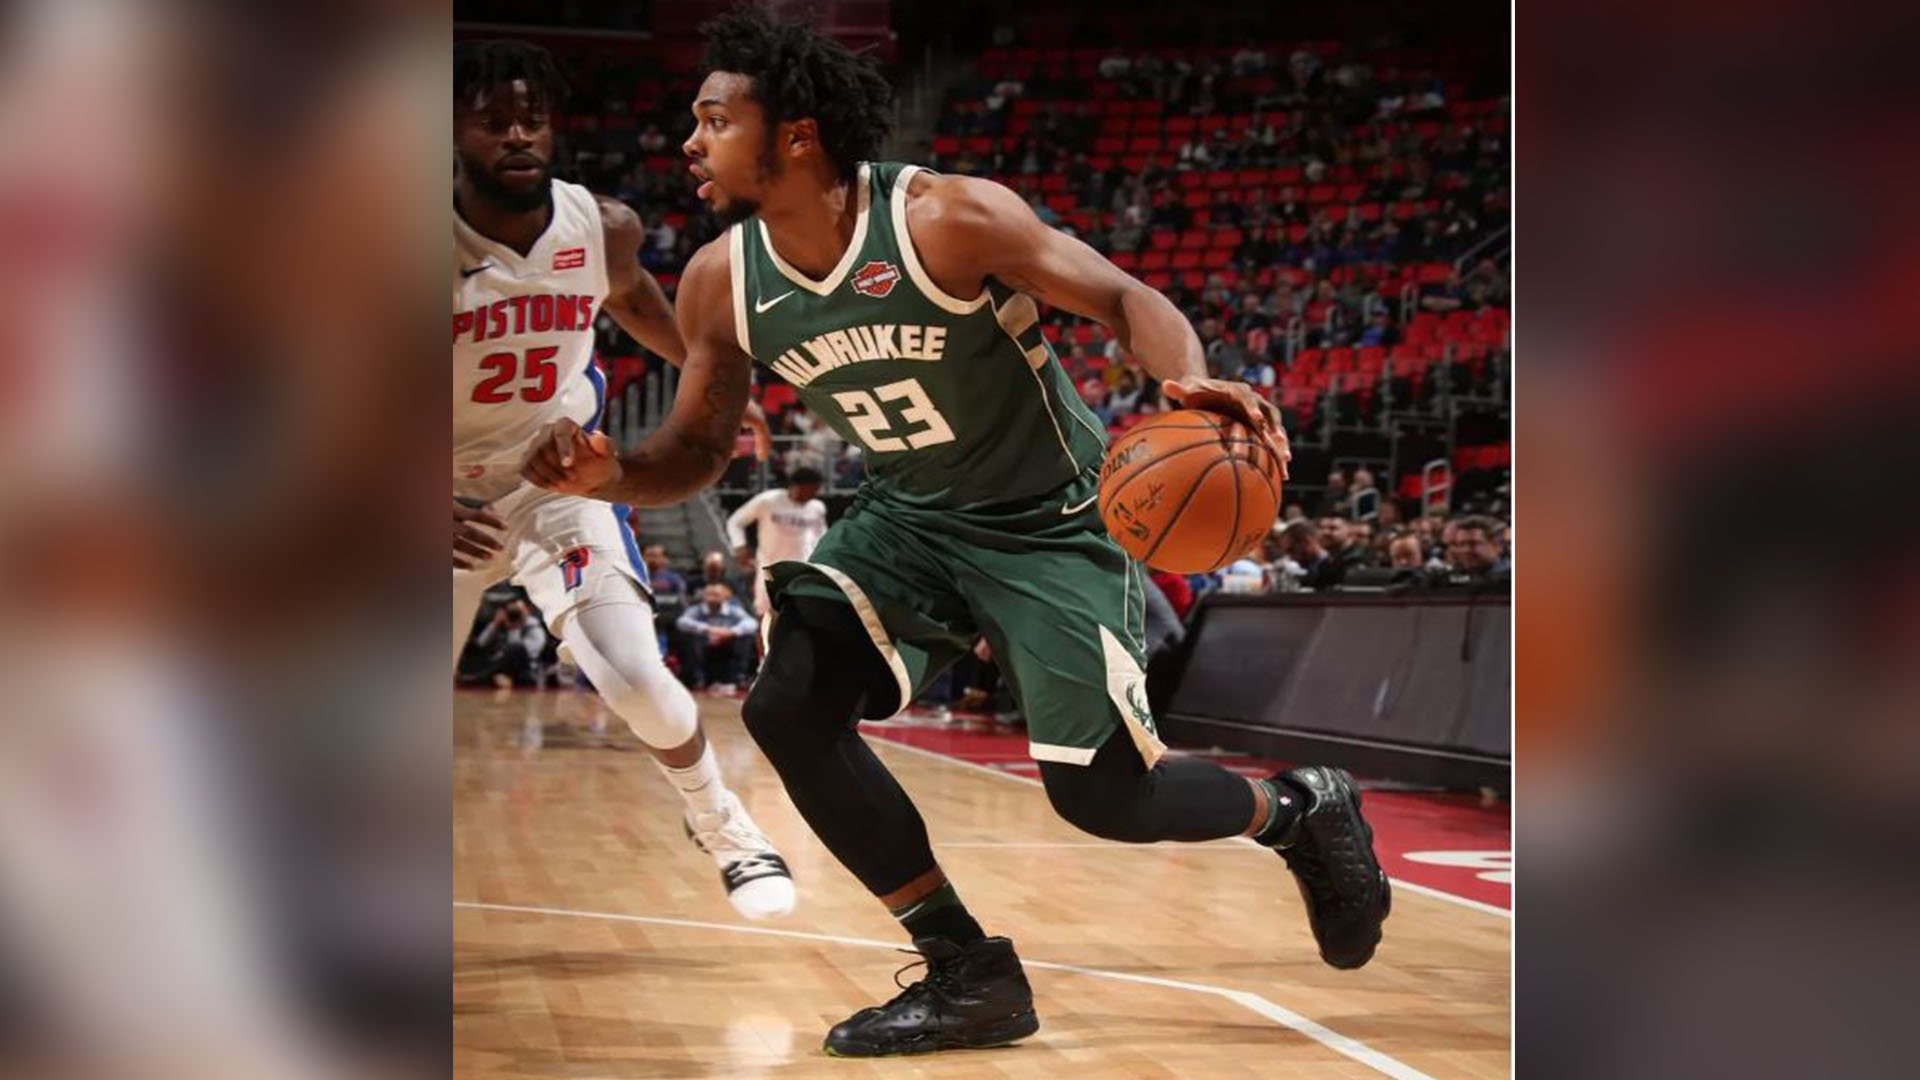 Milwaukee's police chief apologized on Wednesday for the actions of officers involved in the January arrest of Milwaukee Bucks rookie Sterling Brown. ( Credit: CNN)